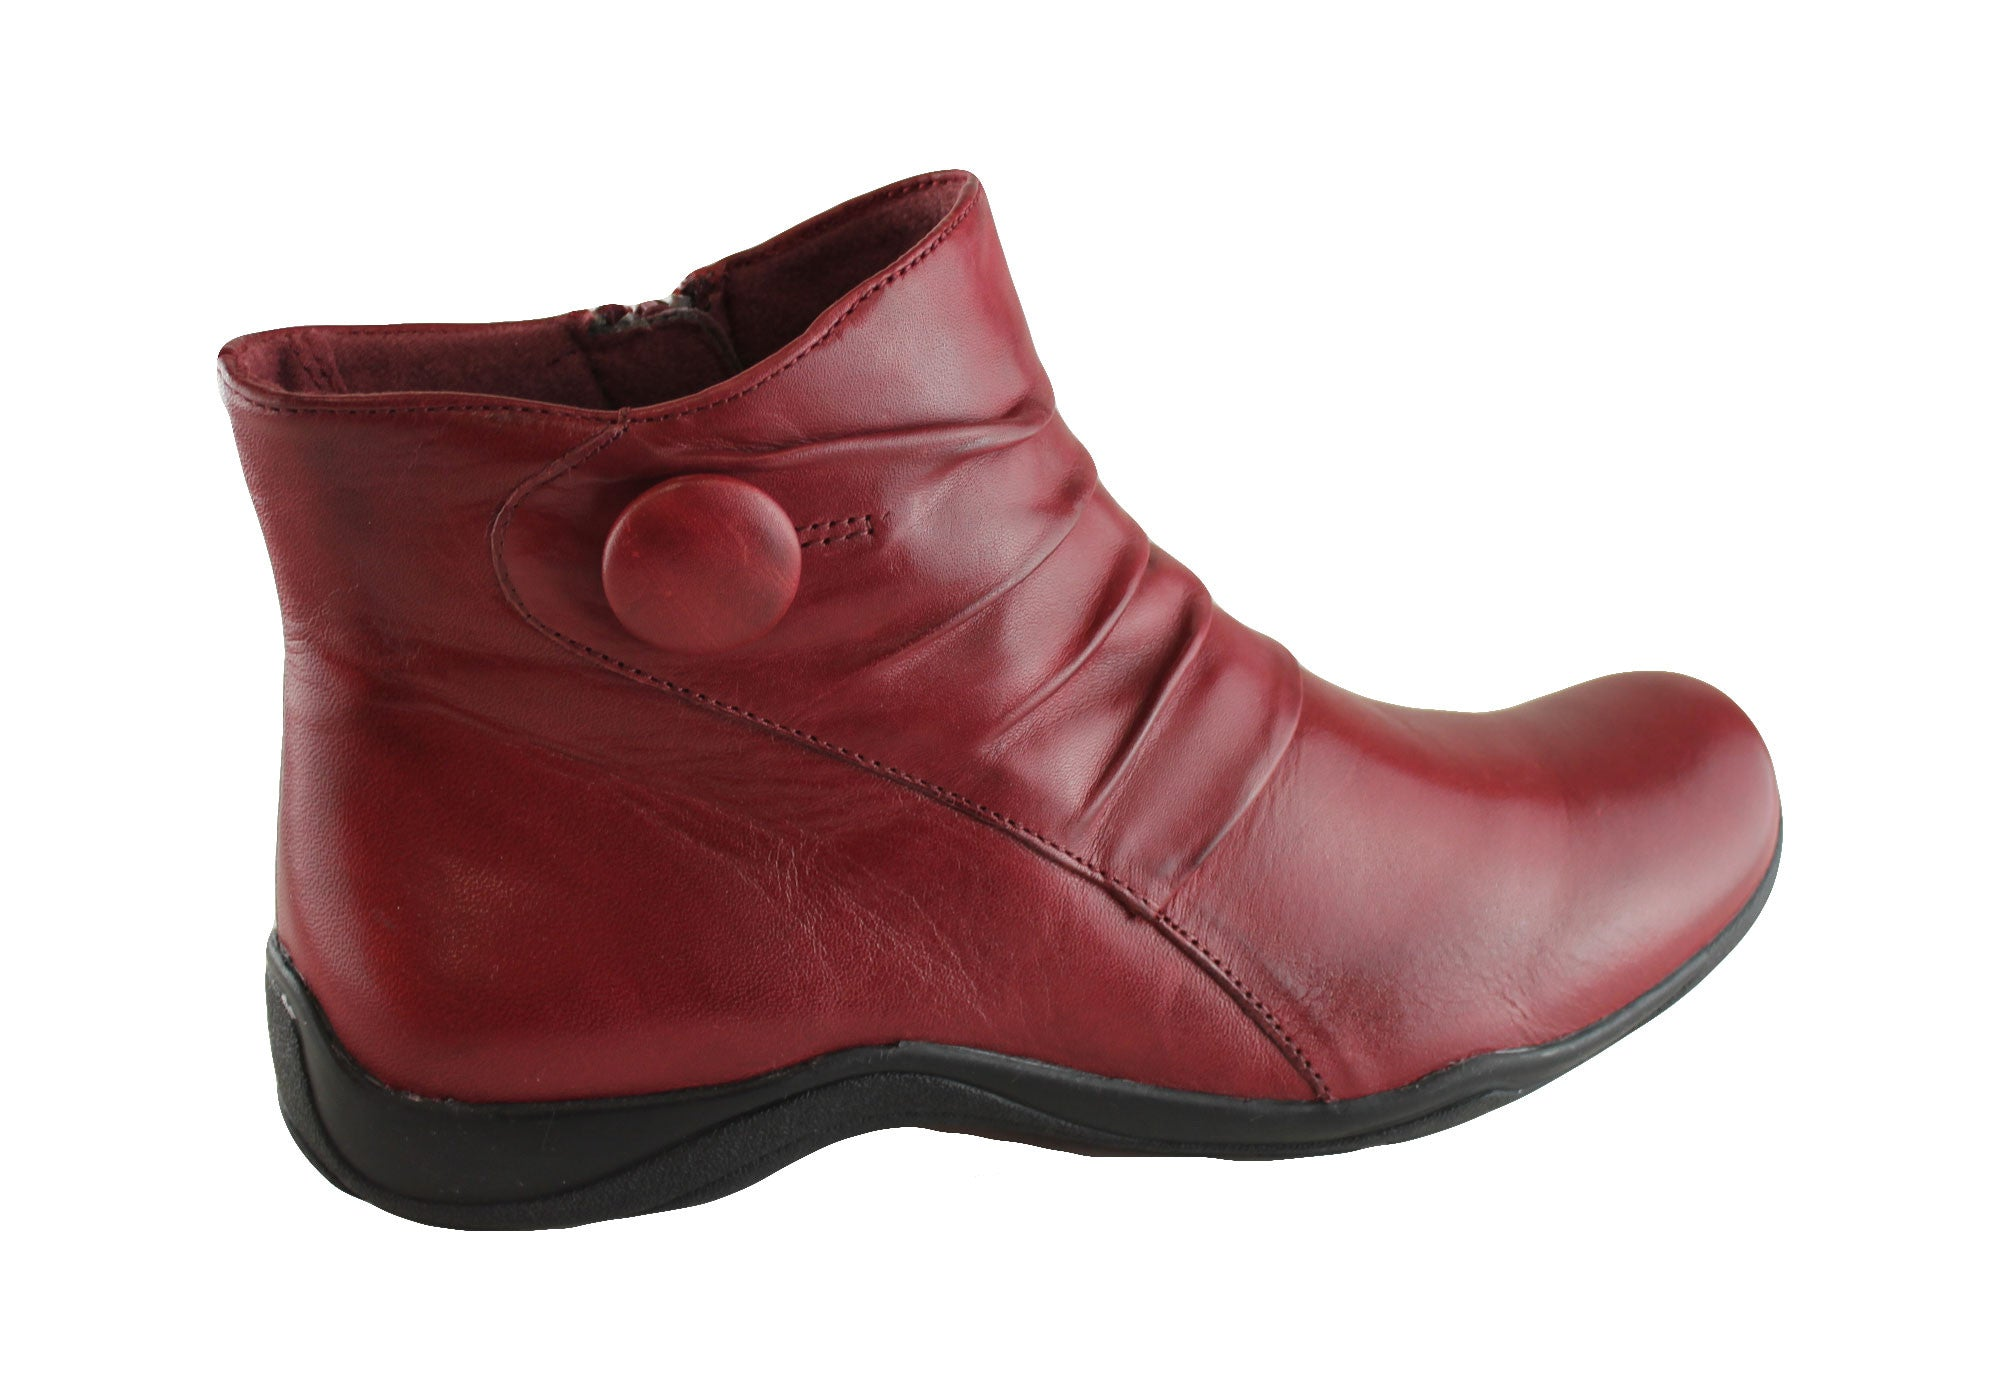 Planet Shoes Shani Womens Comfort Ankle Boots